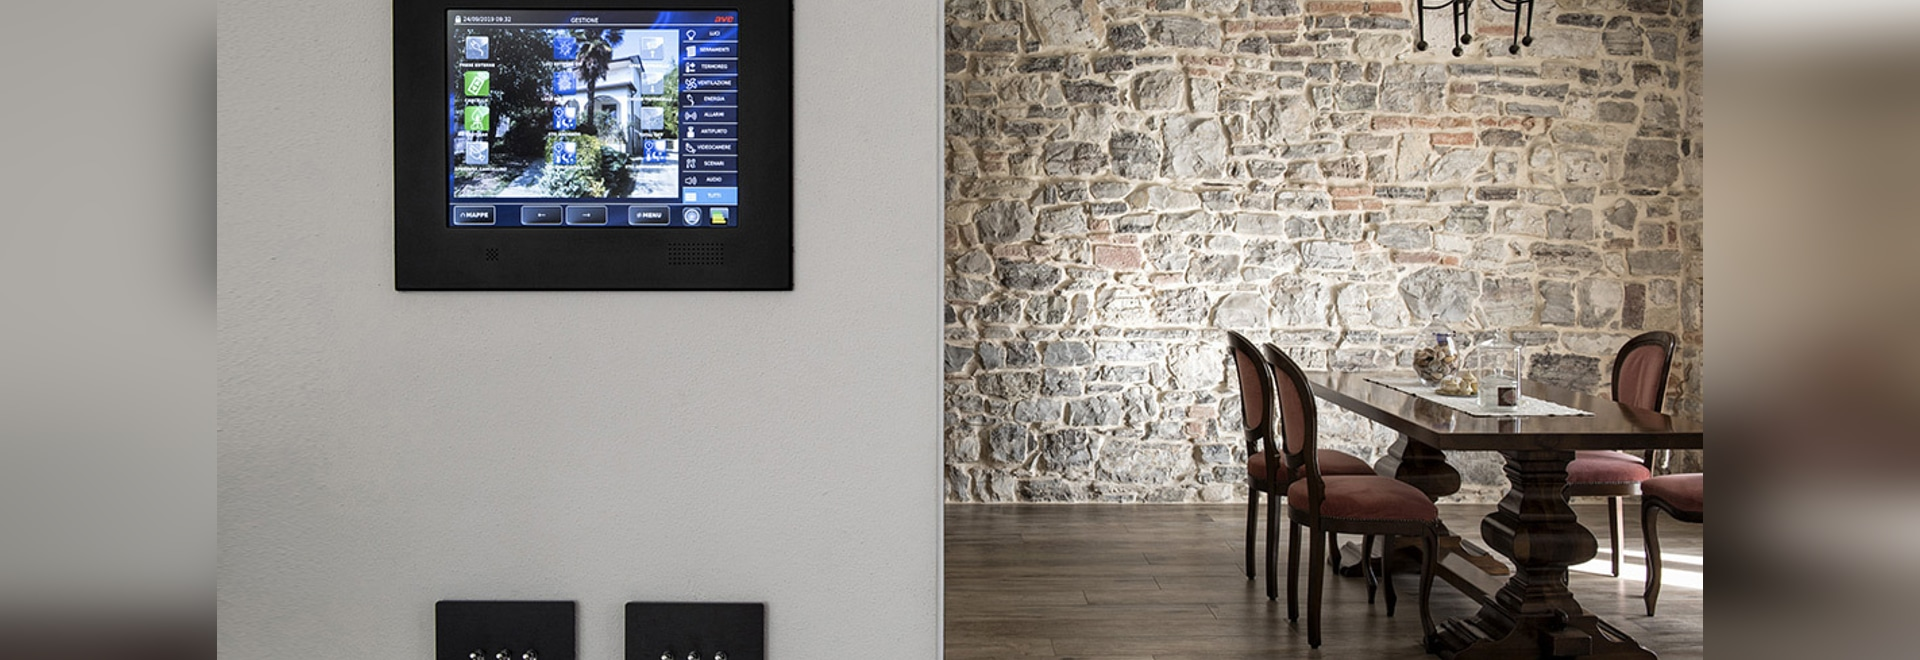 Home automation toggle controls are available in AVEbus and KNX versions